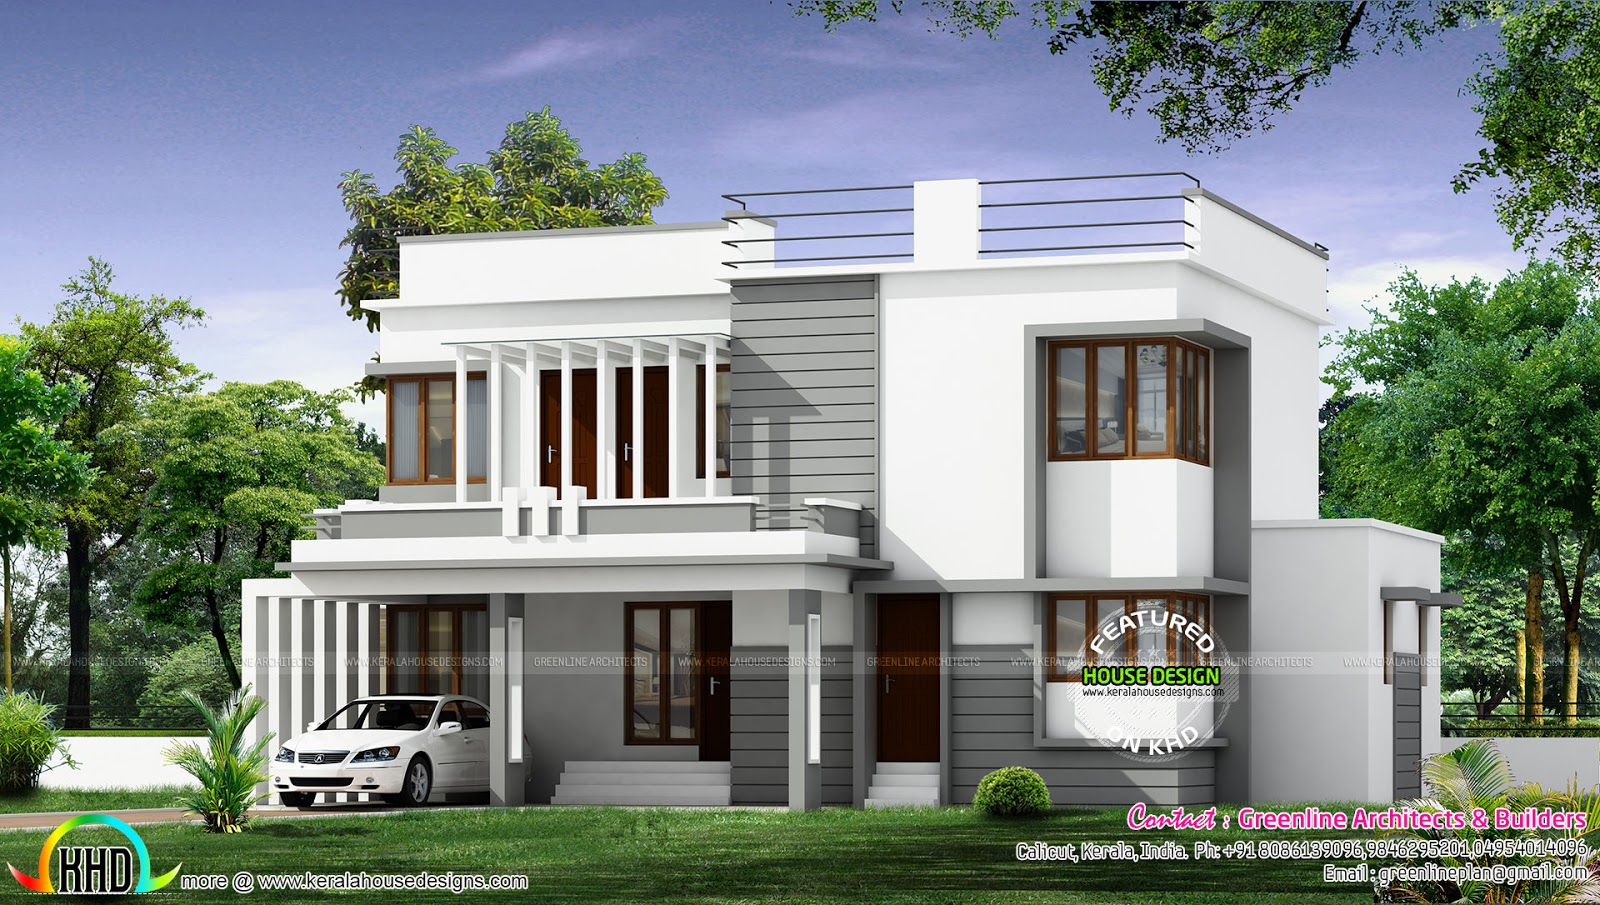 New modern house architecture kerala home design and for Home designs 2016